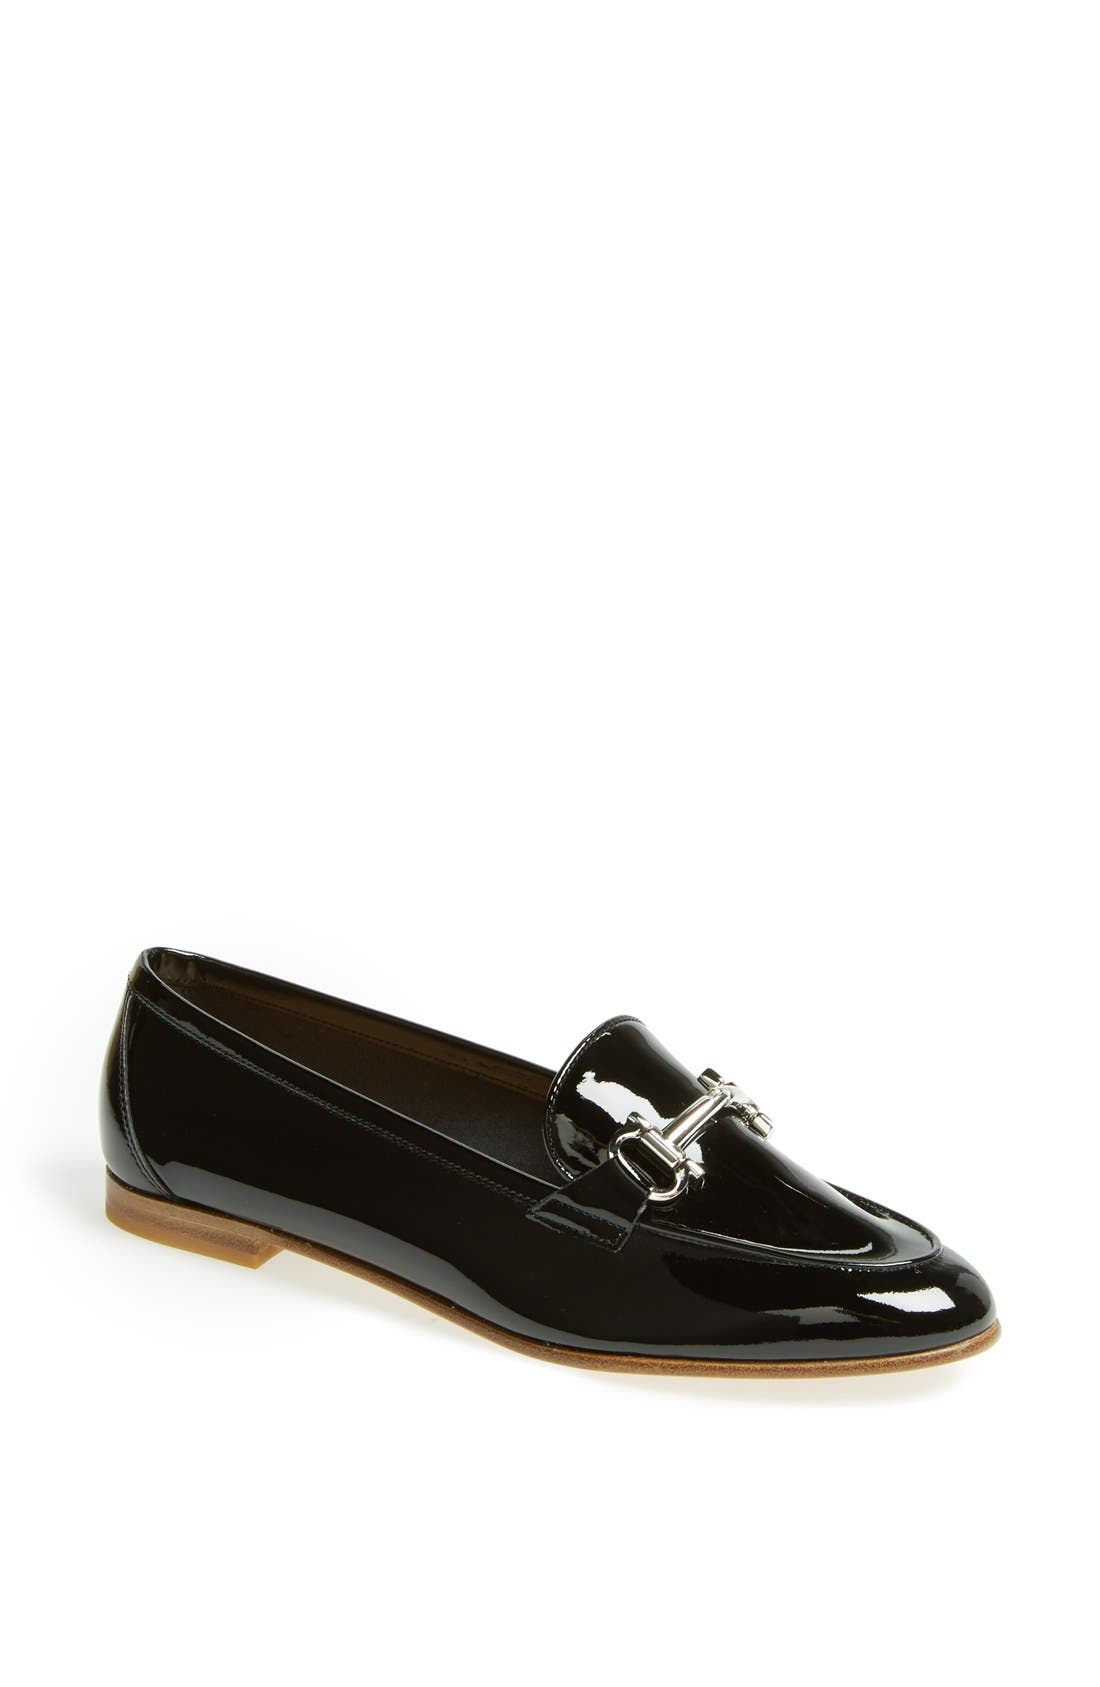 Alternate Image 1 Selected - Salvatore Ferragamo 'My Informal' Leather Loafer